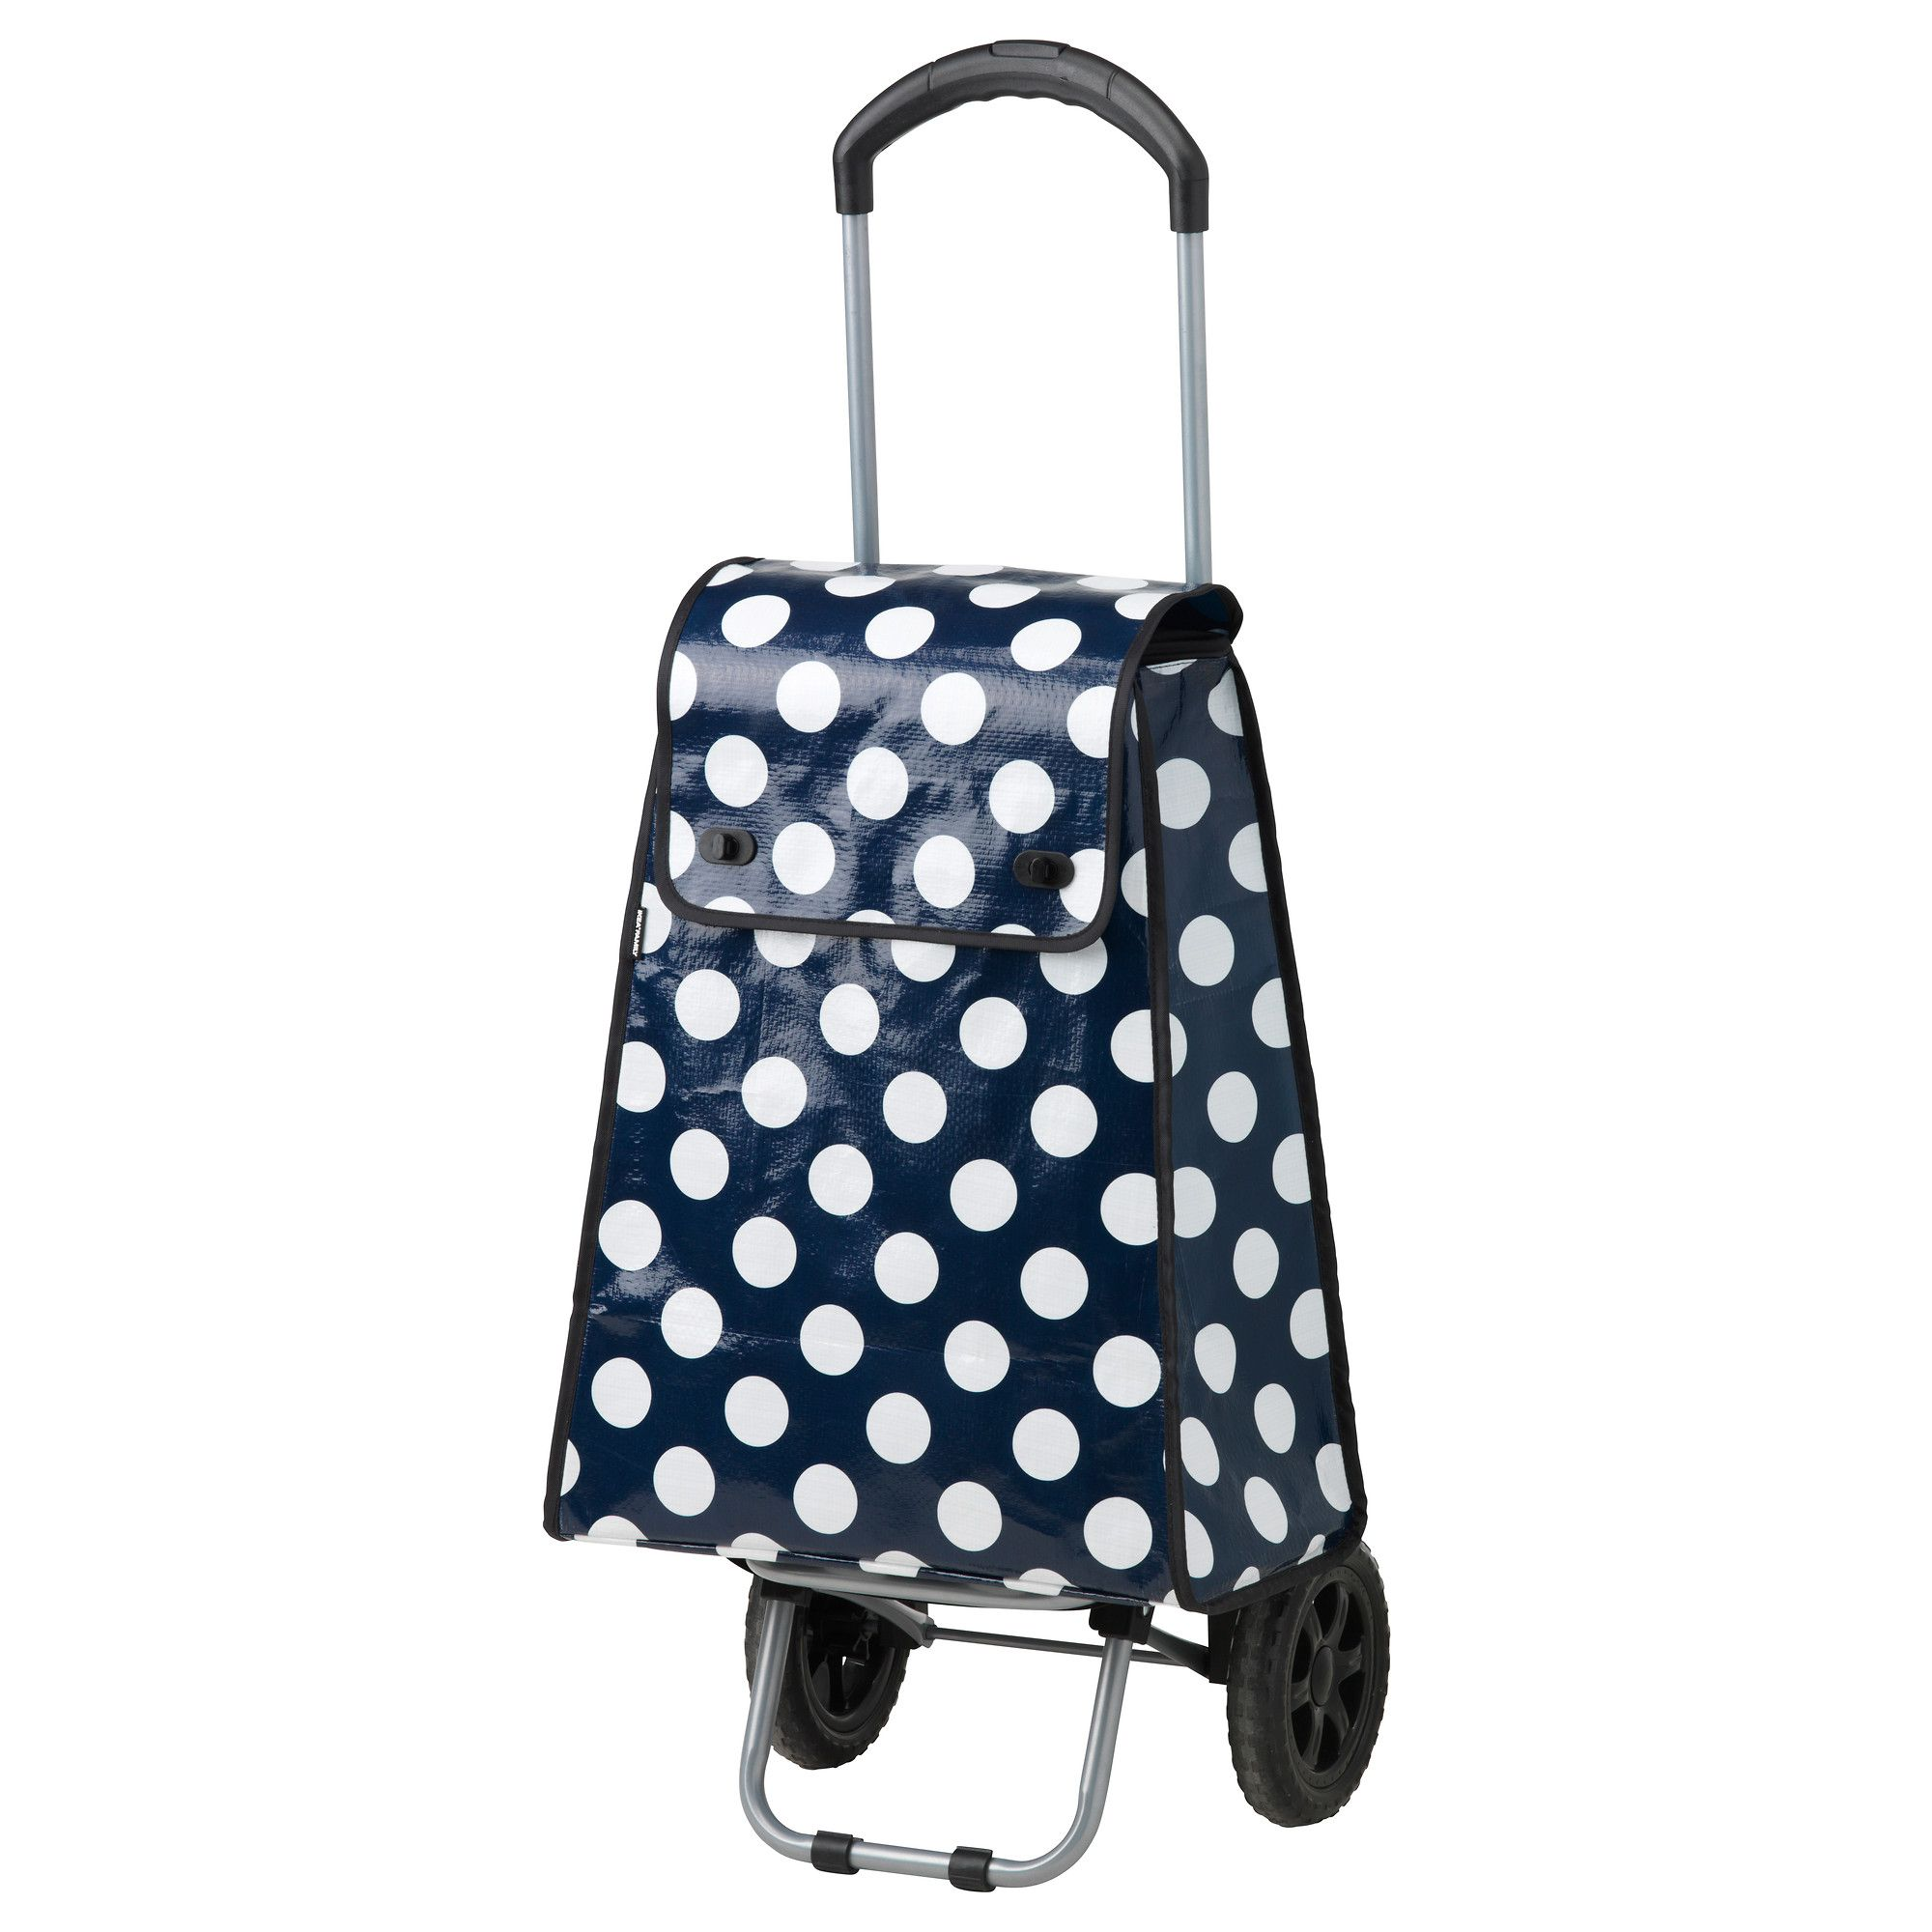 UPPTÄCKA Shopping bag with wheels - IKEA only $17.99 at ...